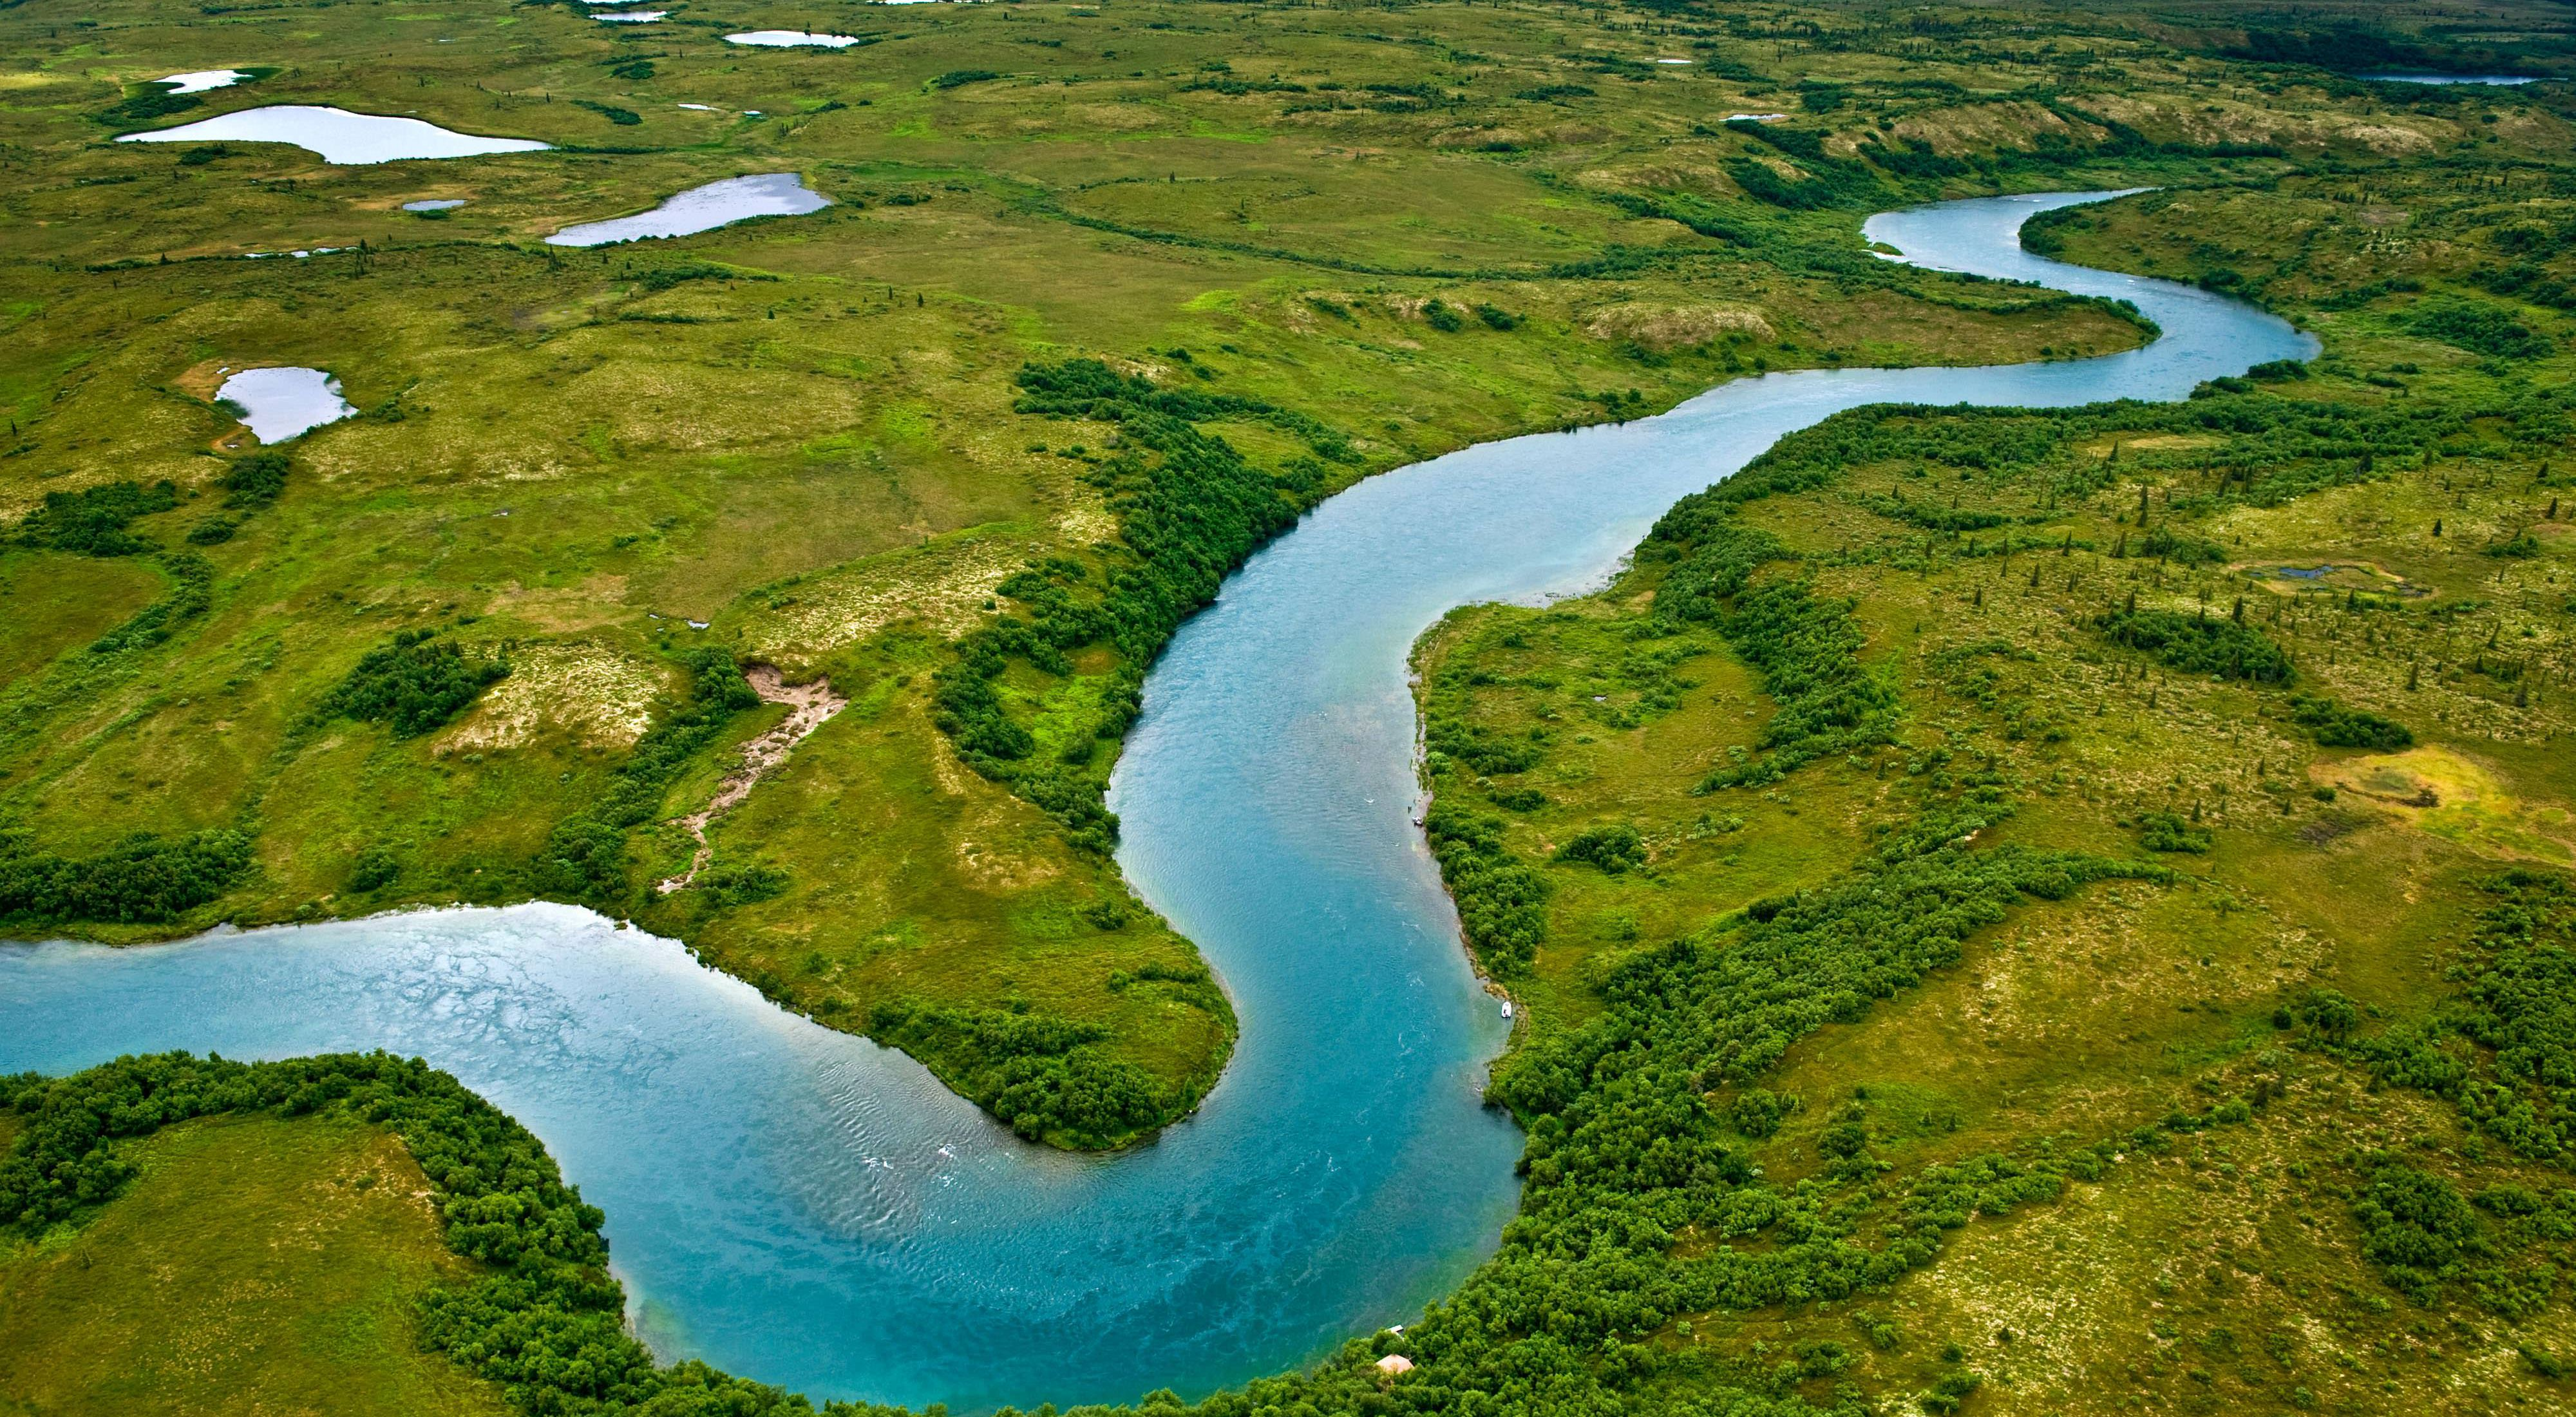 Aerial photo of a river winding through countryside.